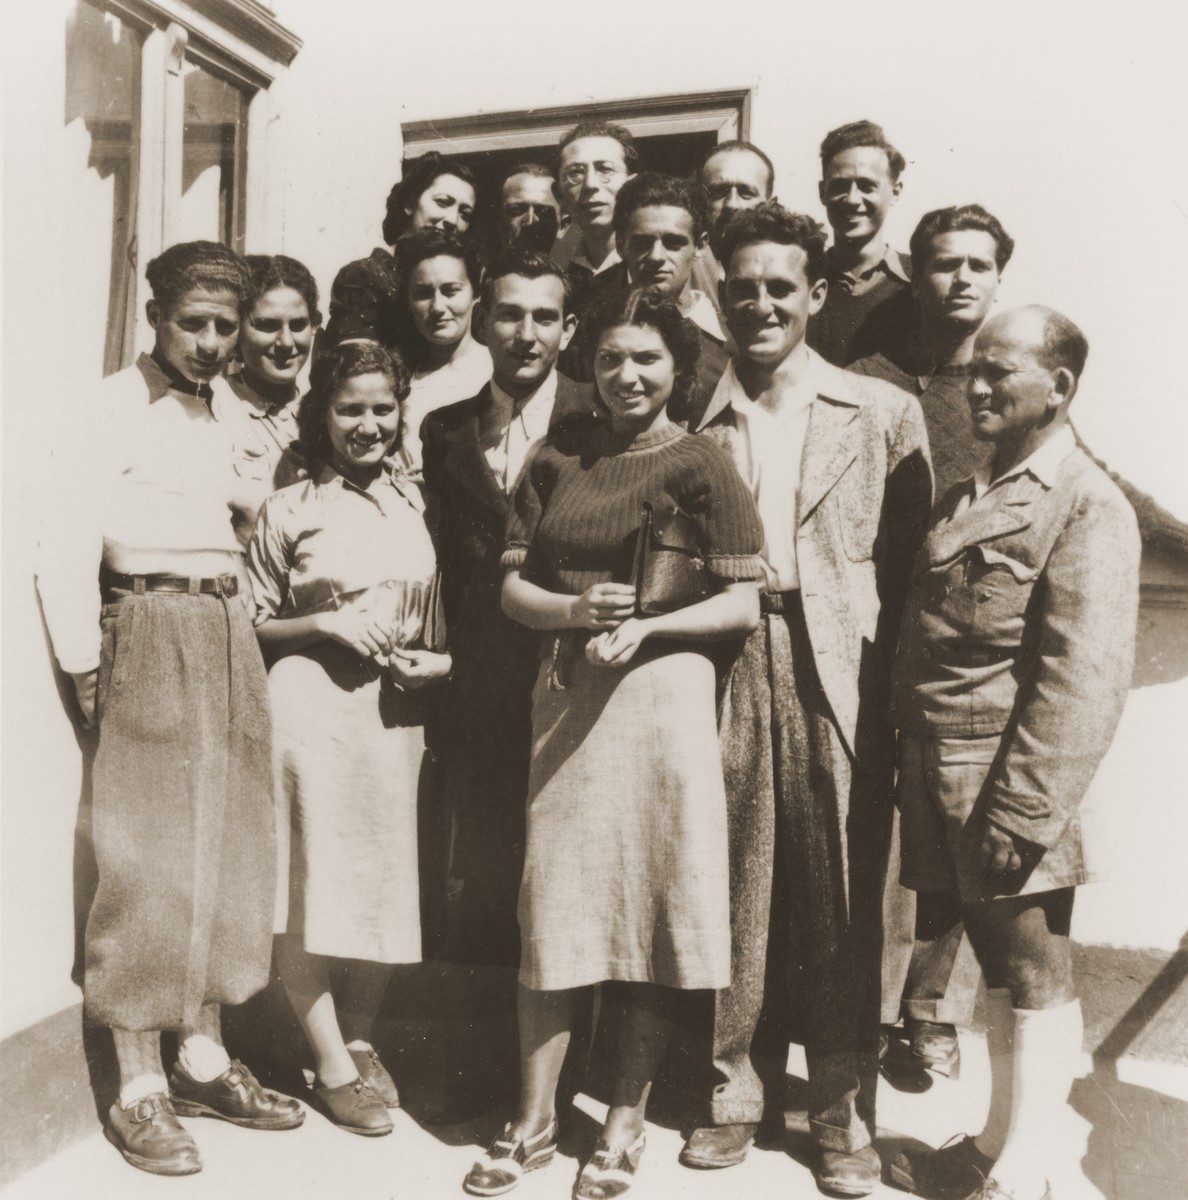 Group portrait of Zionist youth from the Kladovo transport taken after the triple wedding of members of their group.    Among those pictured are: Erich Nachhaeuser (far left), Jukl Dorfmann (top row, middle, wearing glasses), and Klara-Shula Dorfmann (middle row, second from left).